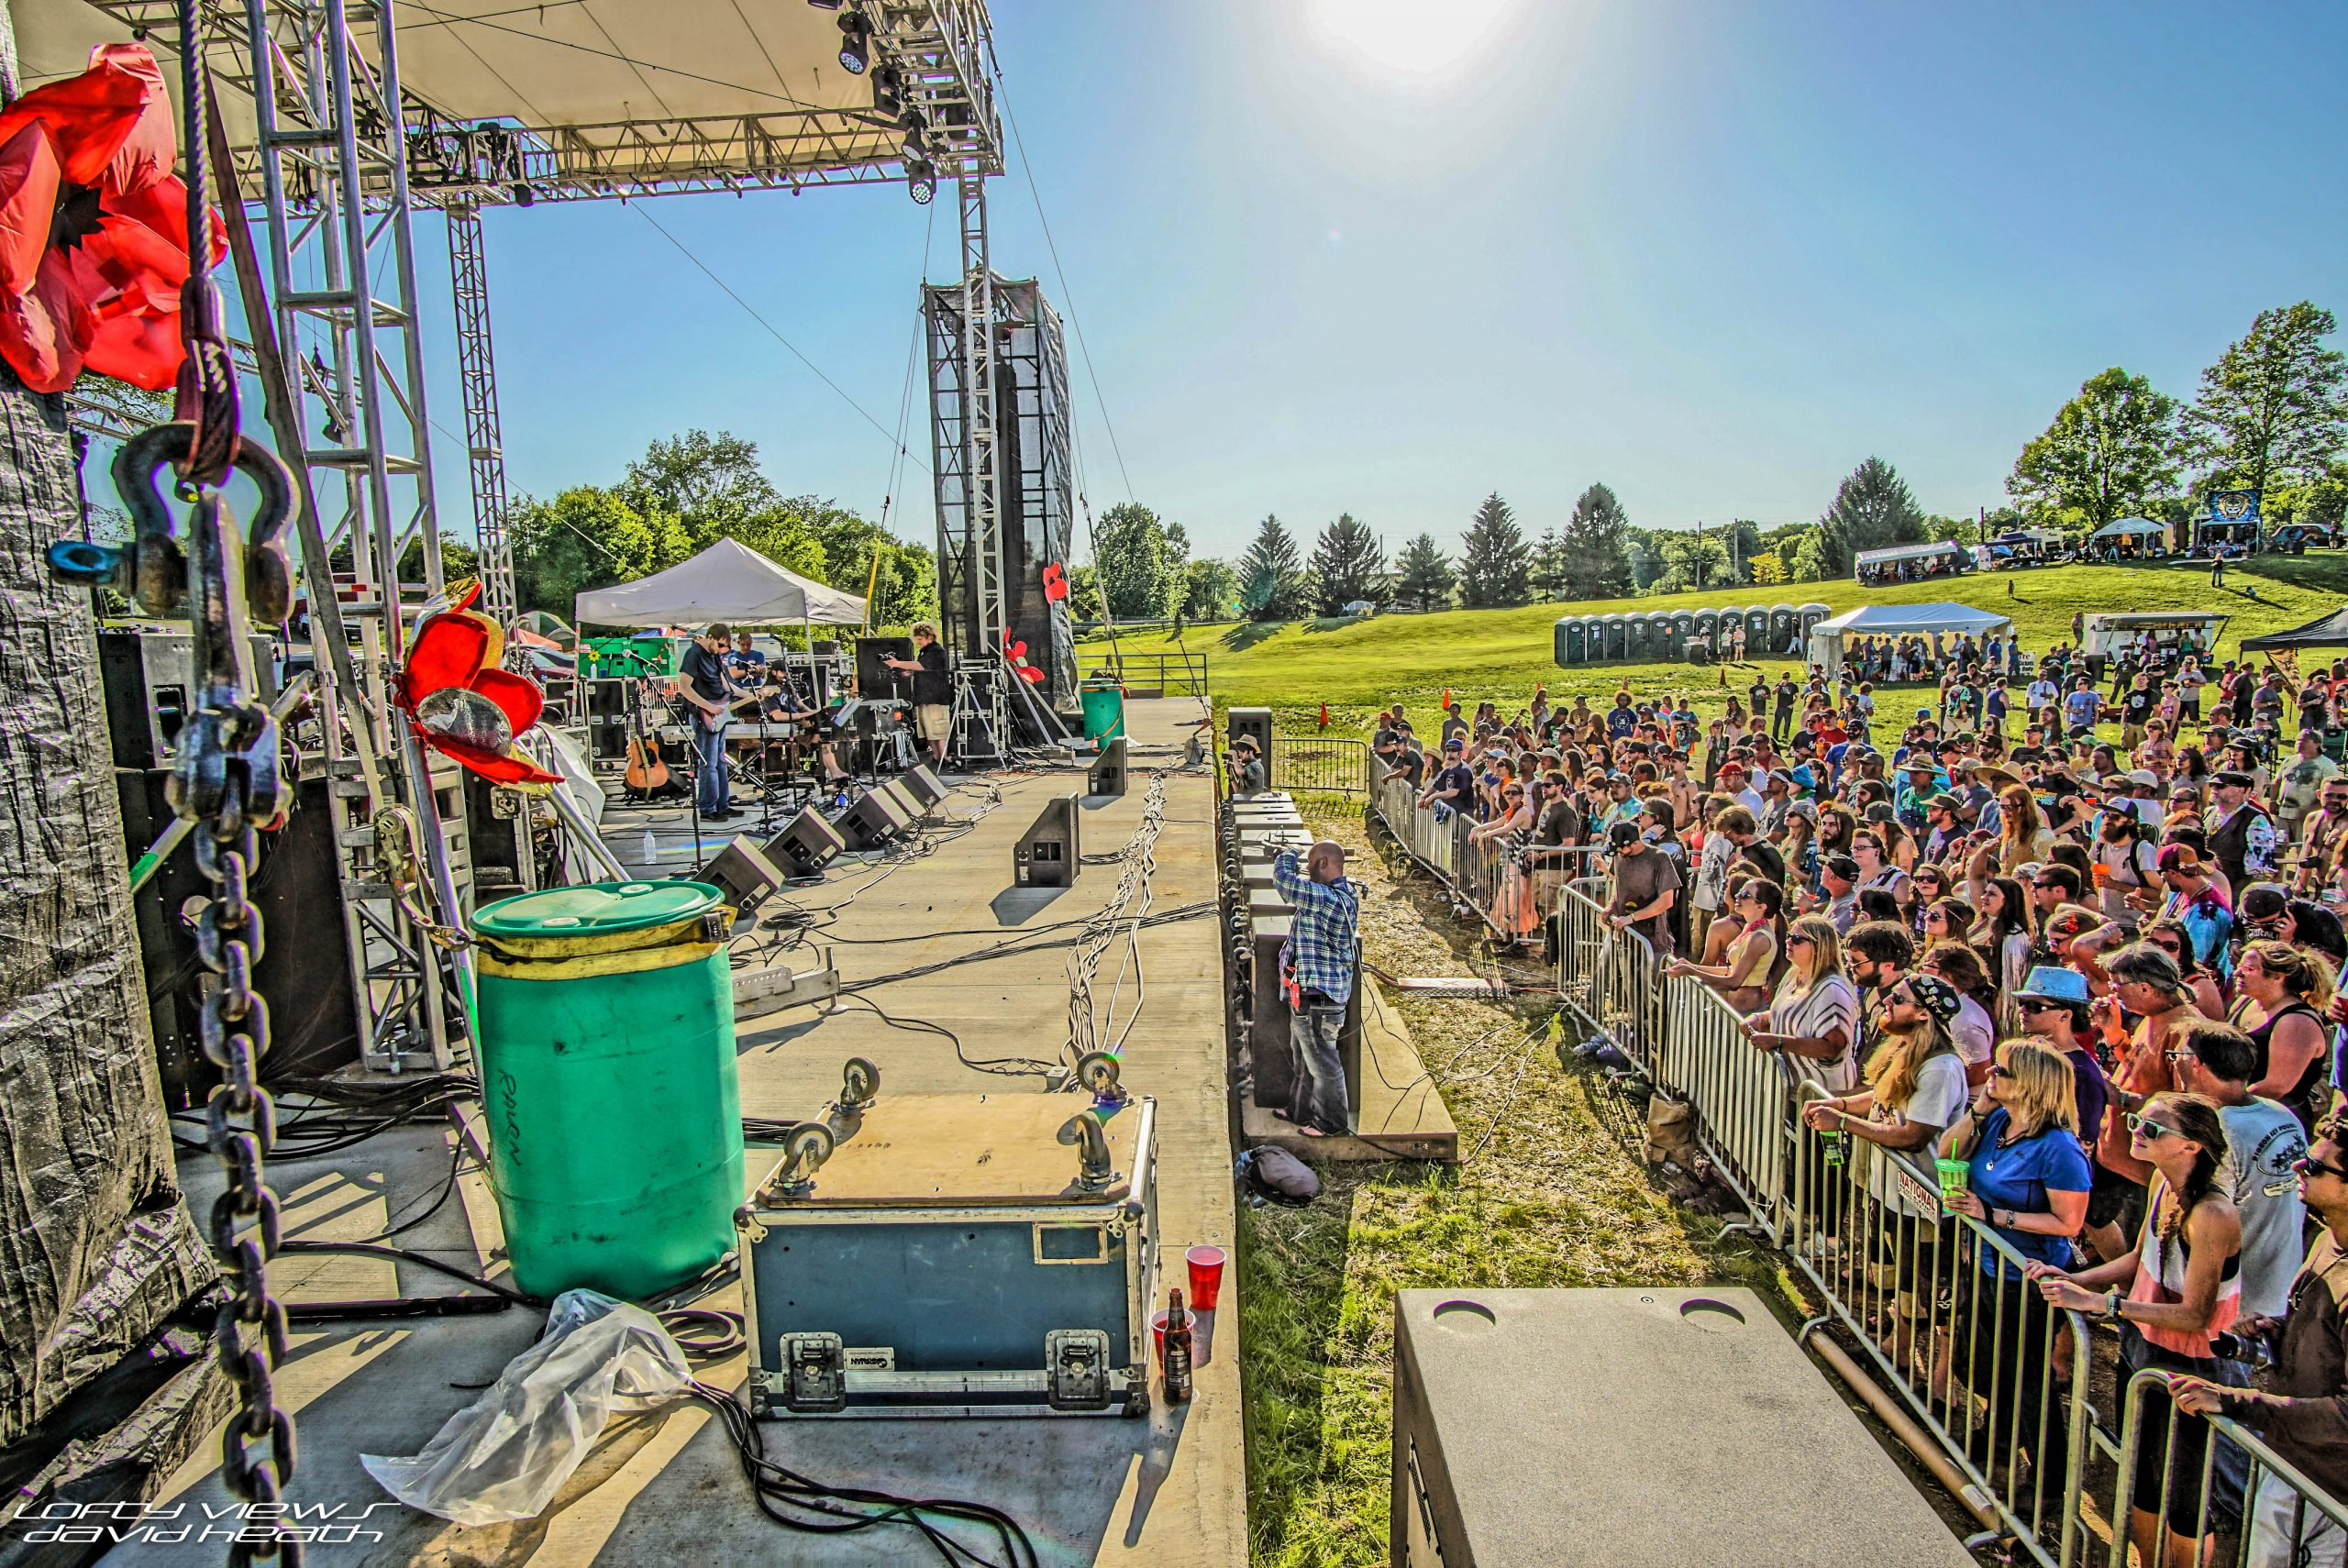 The Ville Festival, May 21-25 2015: Review and Photos